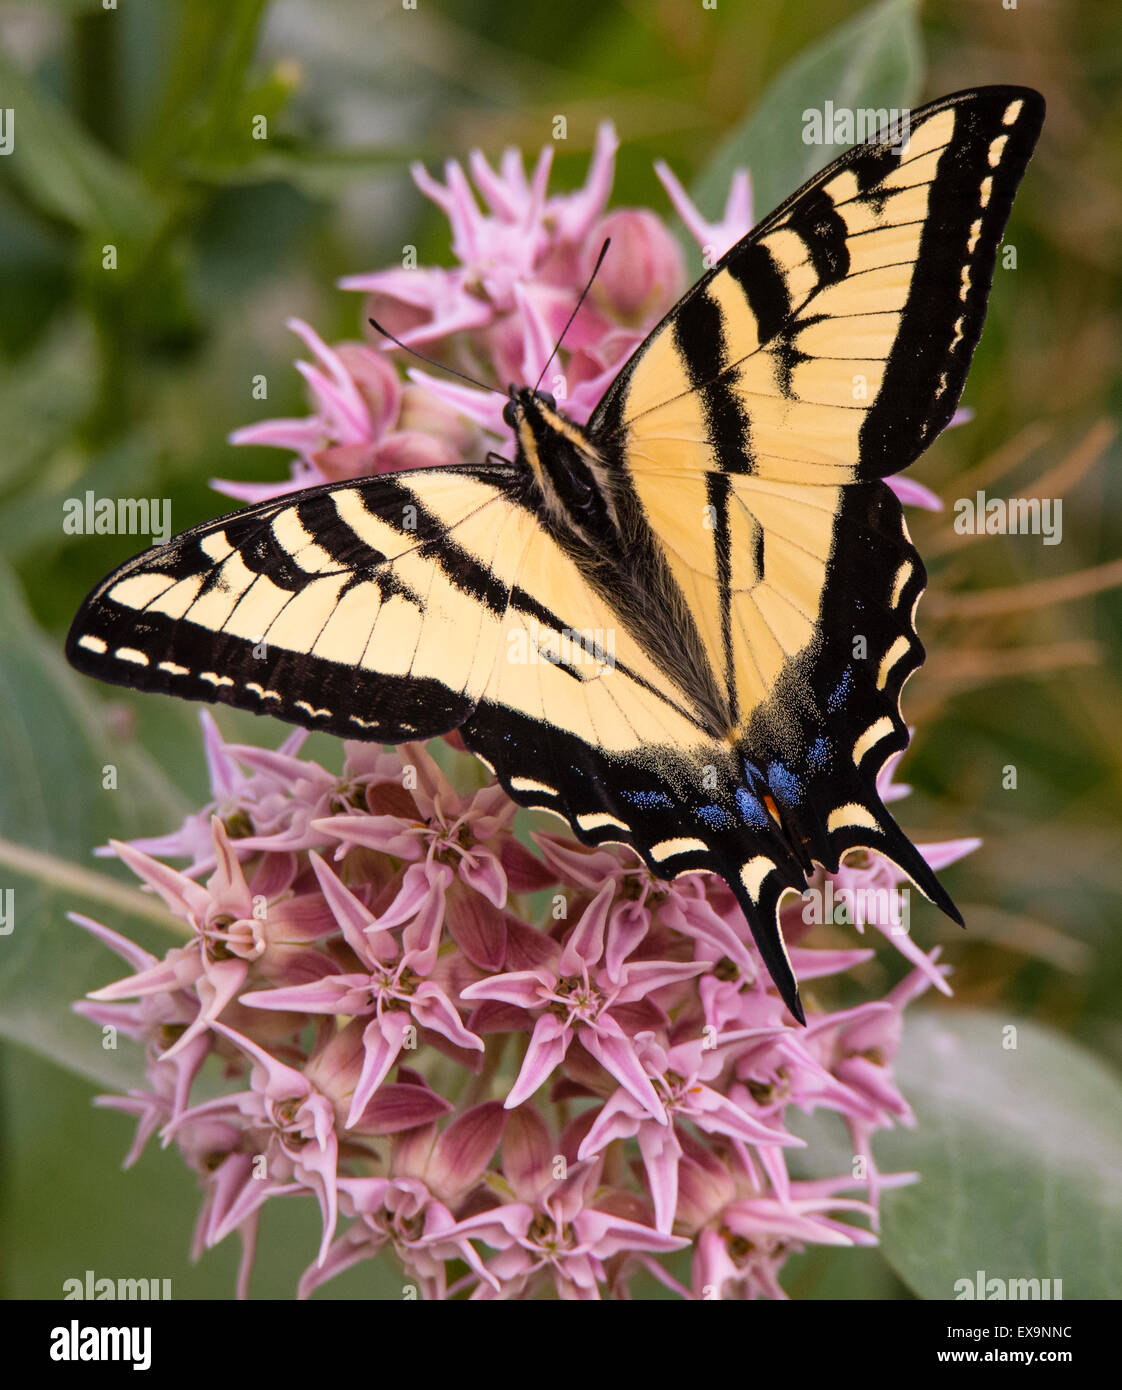 Merveilleux Butterflies, Eastern Tiger Swallowtail Butterfly Feeding On Nector From A  Blooming Milkweed Plant. Idaho, USA, North America